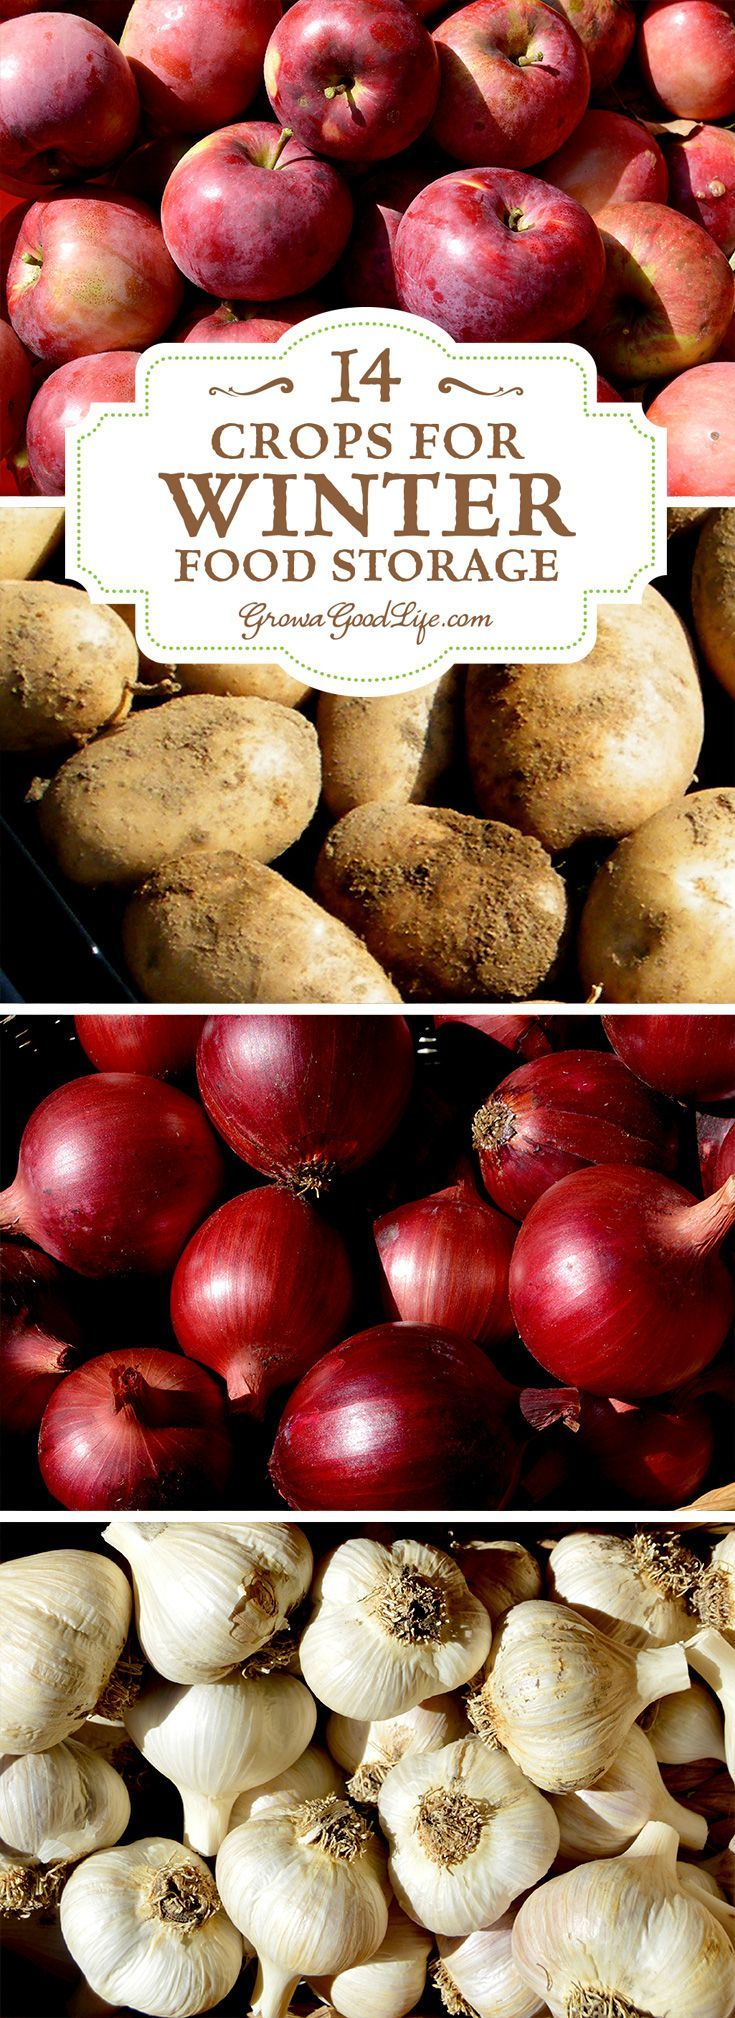 Take advantage of your local farmers' markets and farm stands in the fall and stock up on these locally grown crops for your winter food storage. If you have an area in your basement, crawlspace, or garage that stays cool all winter long, you can make use